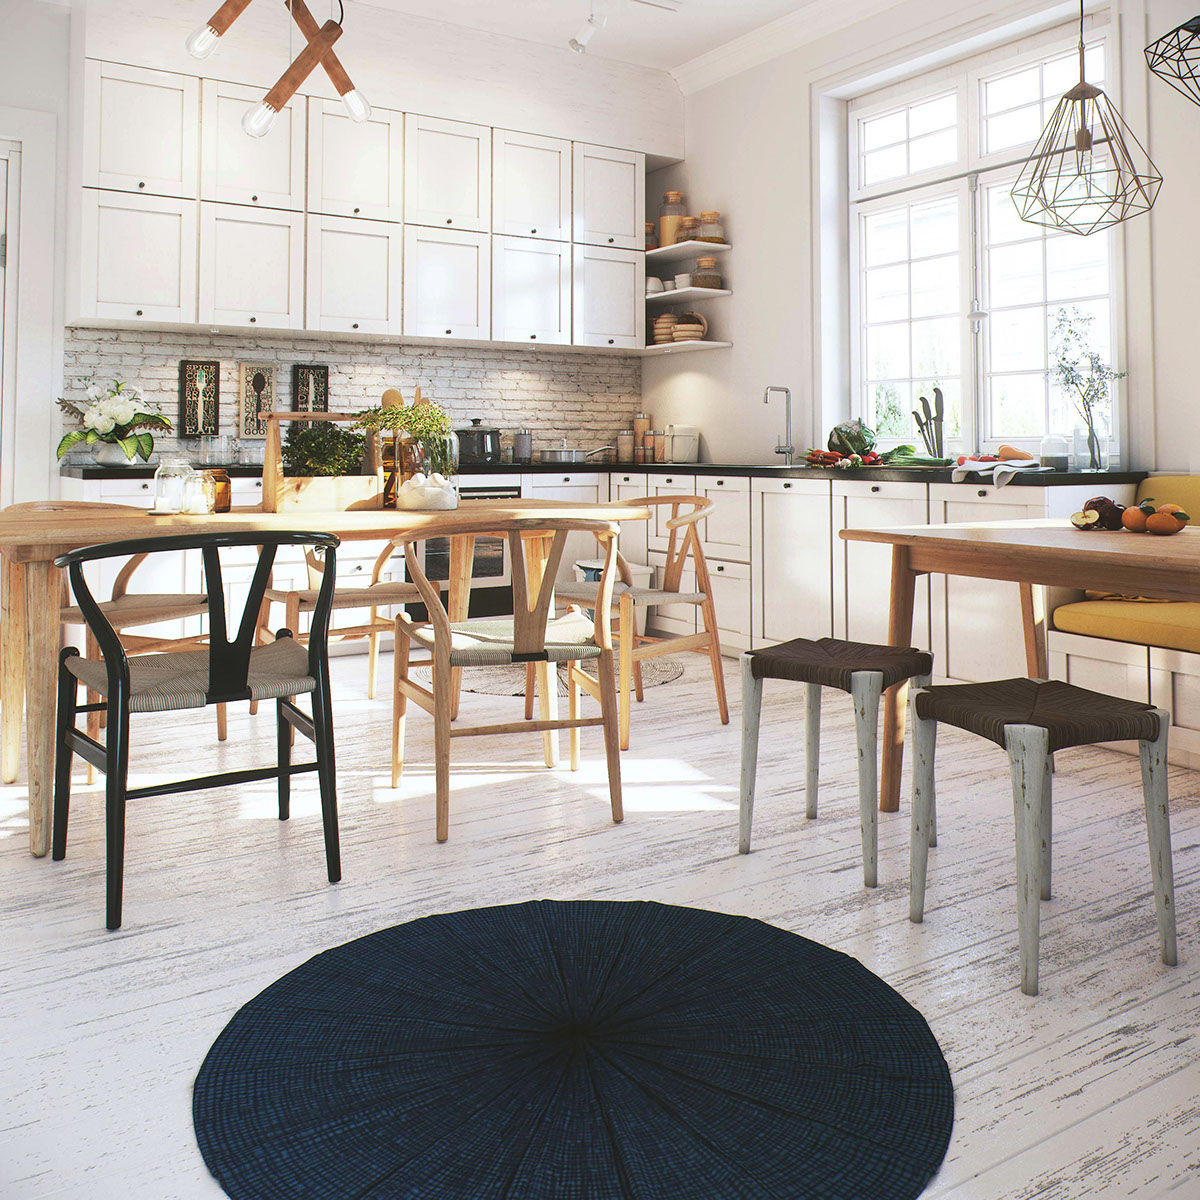 The kitchen cabinets are closed to de clutter the space and make it look more solid